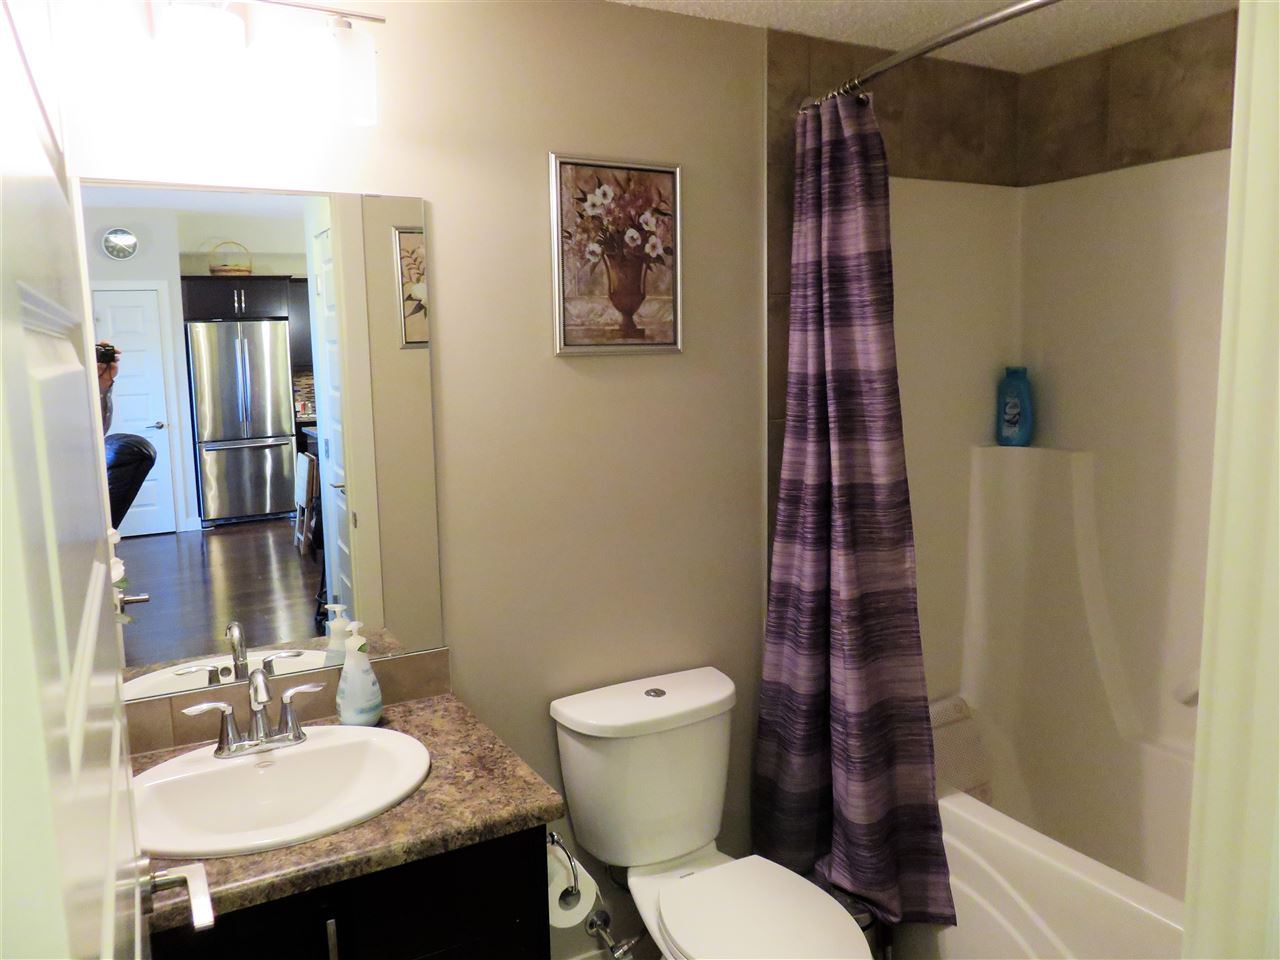 View of the Main 4pc Bathroom located right next to the 2nd Bedroom! :)